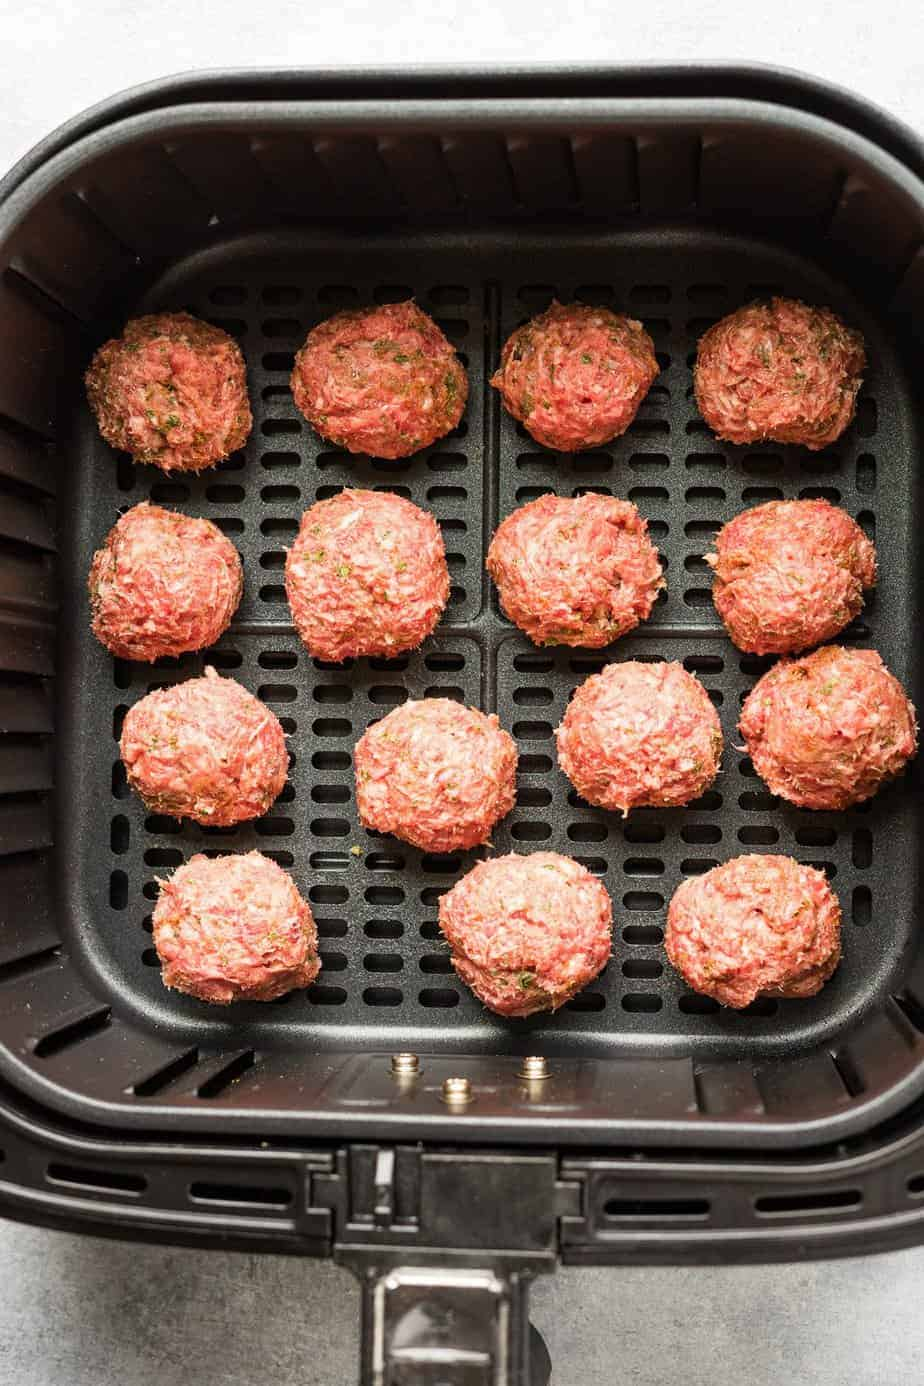 the lamb meatballs inside the air fryer basket before cooking